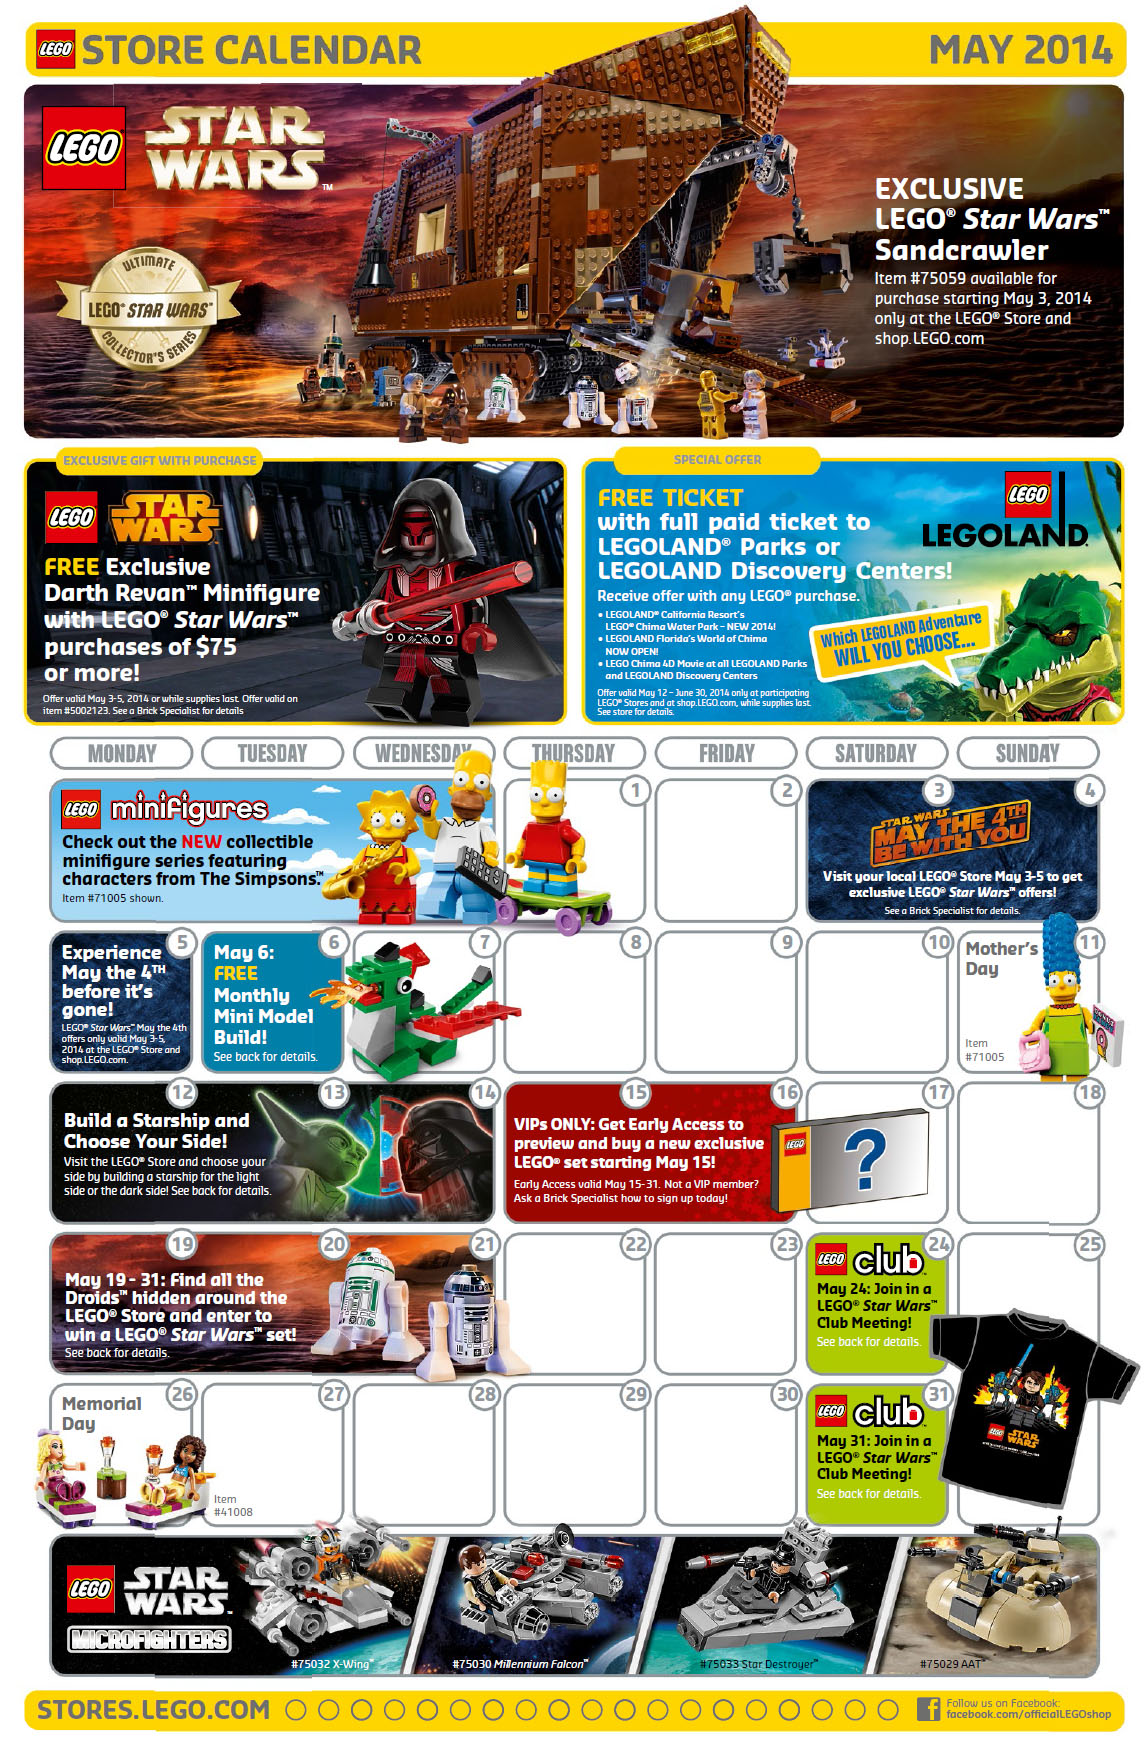 May-2014-LEGO-Store-Calendar-Front-Scan.jpg